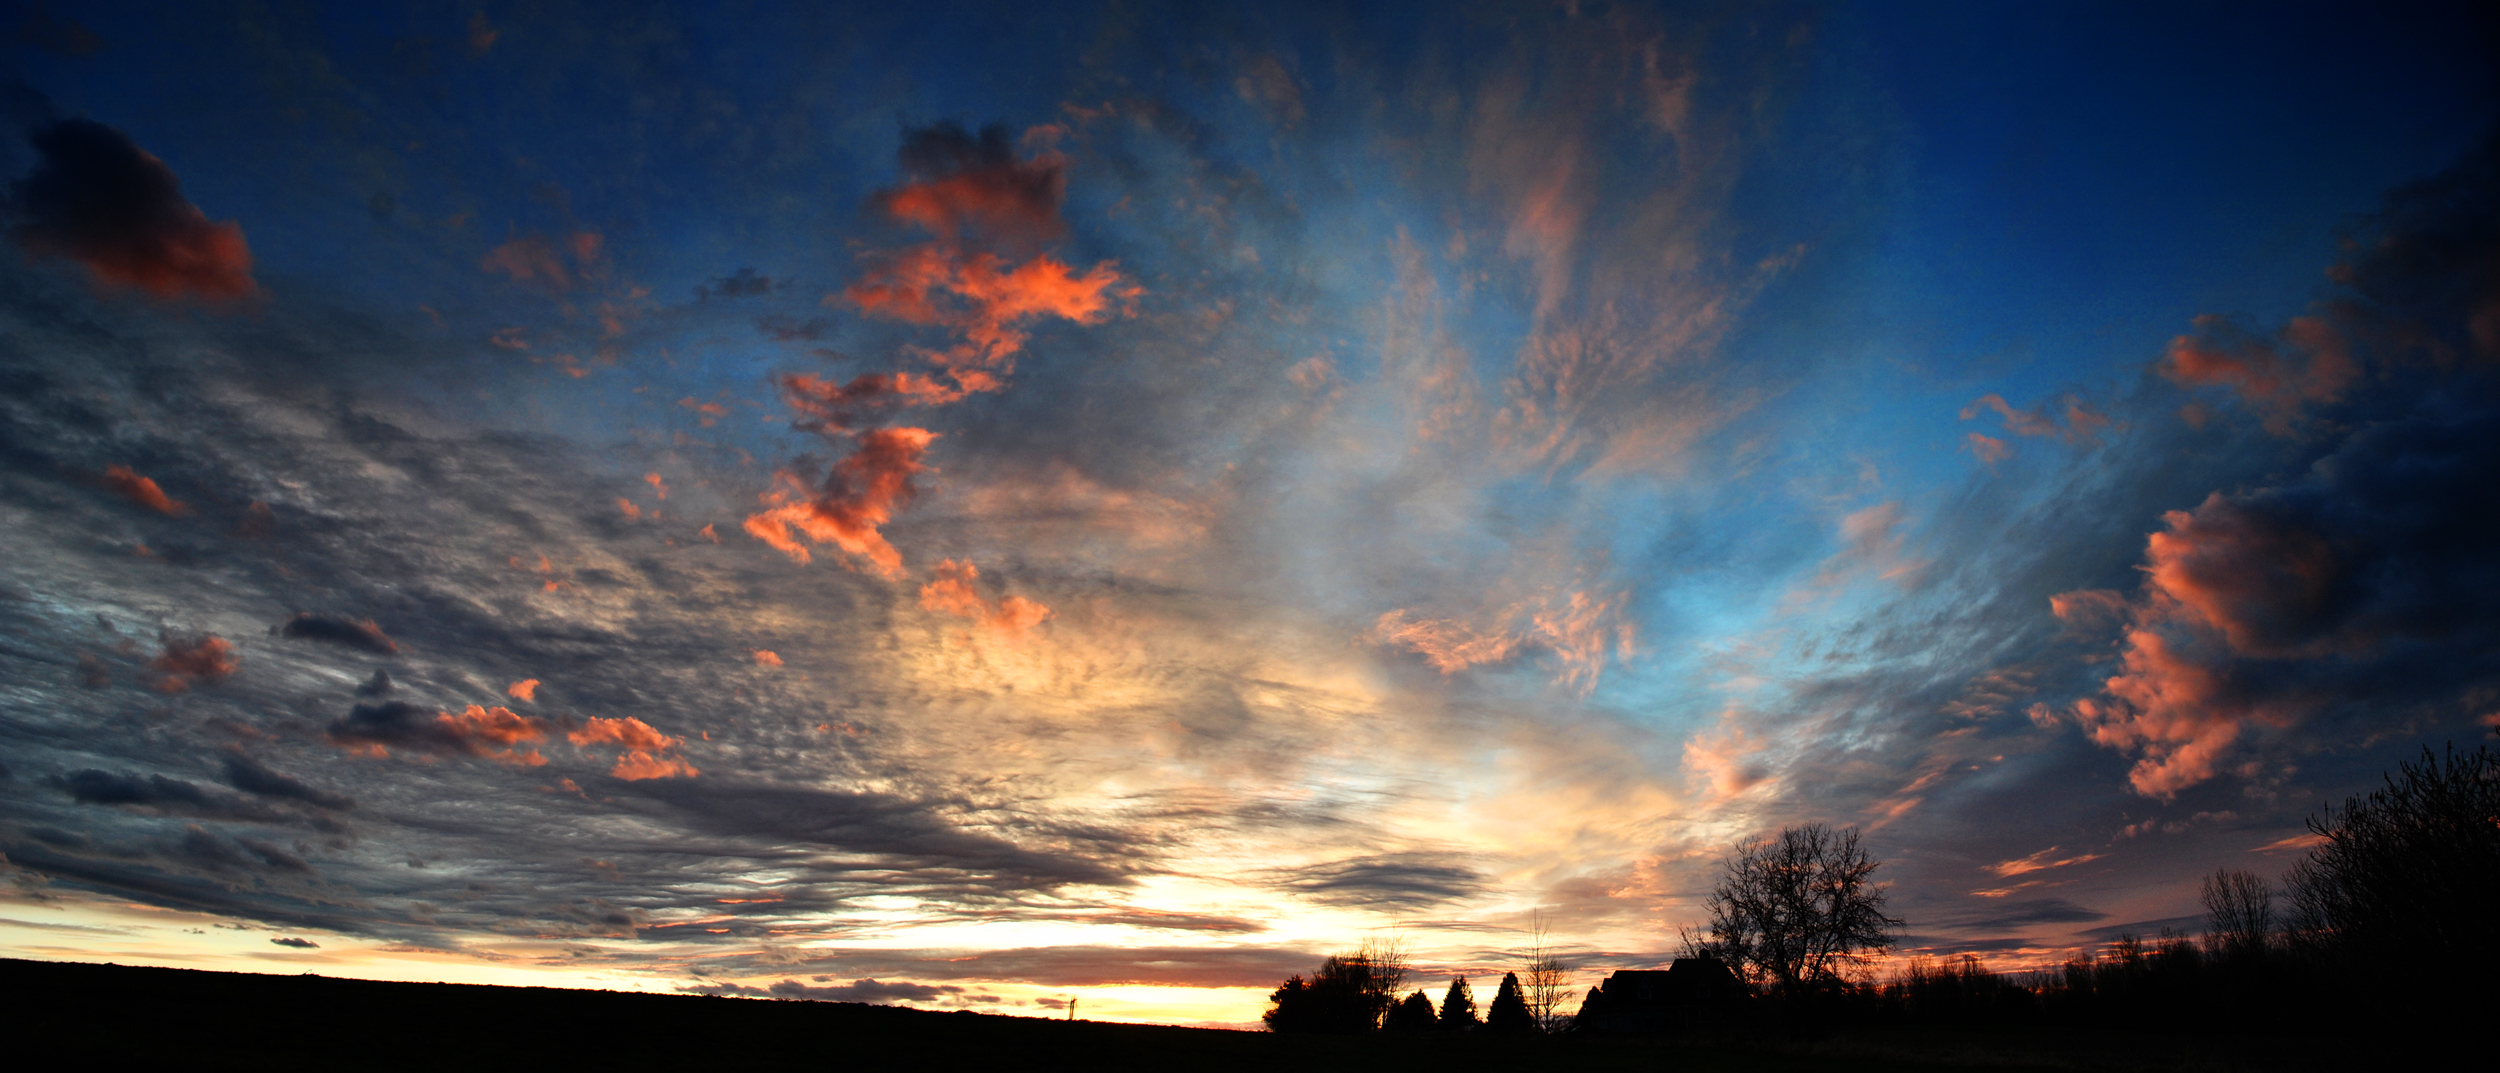 Sunset April 8, 2012 by silverdragon76